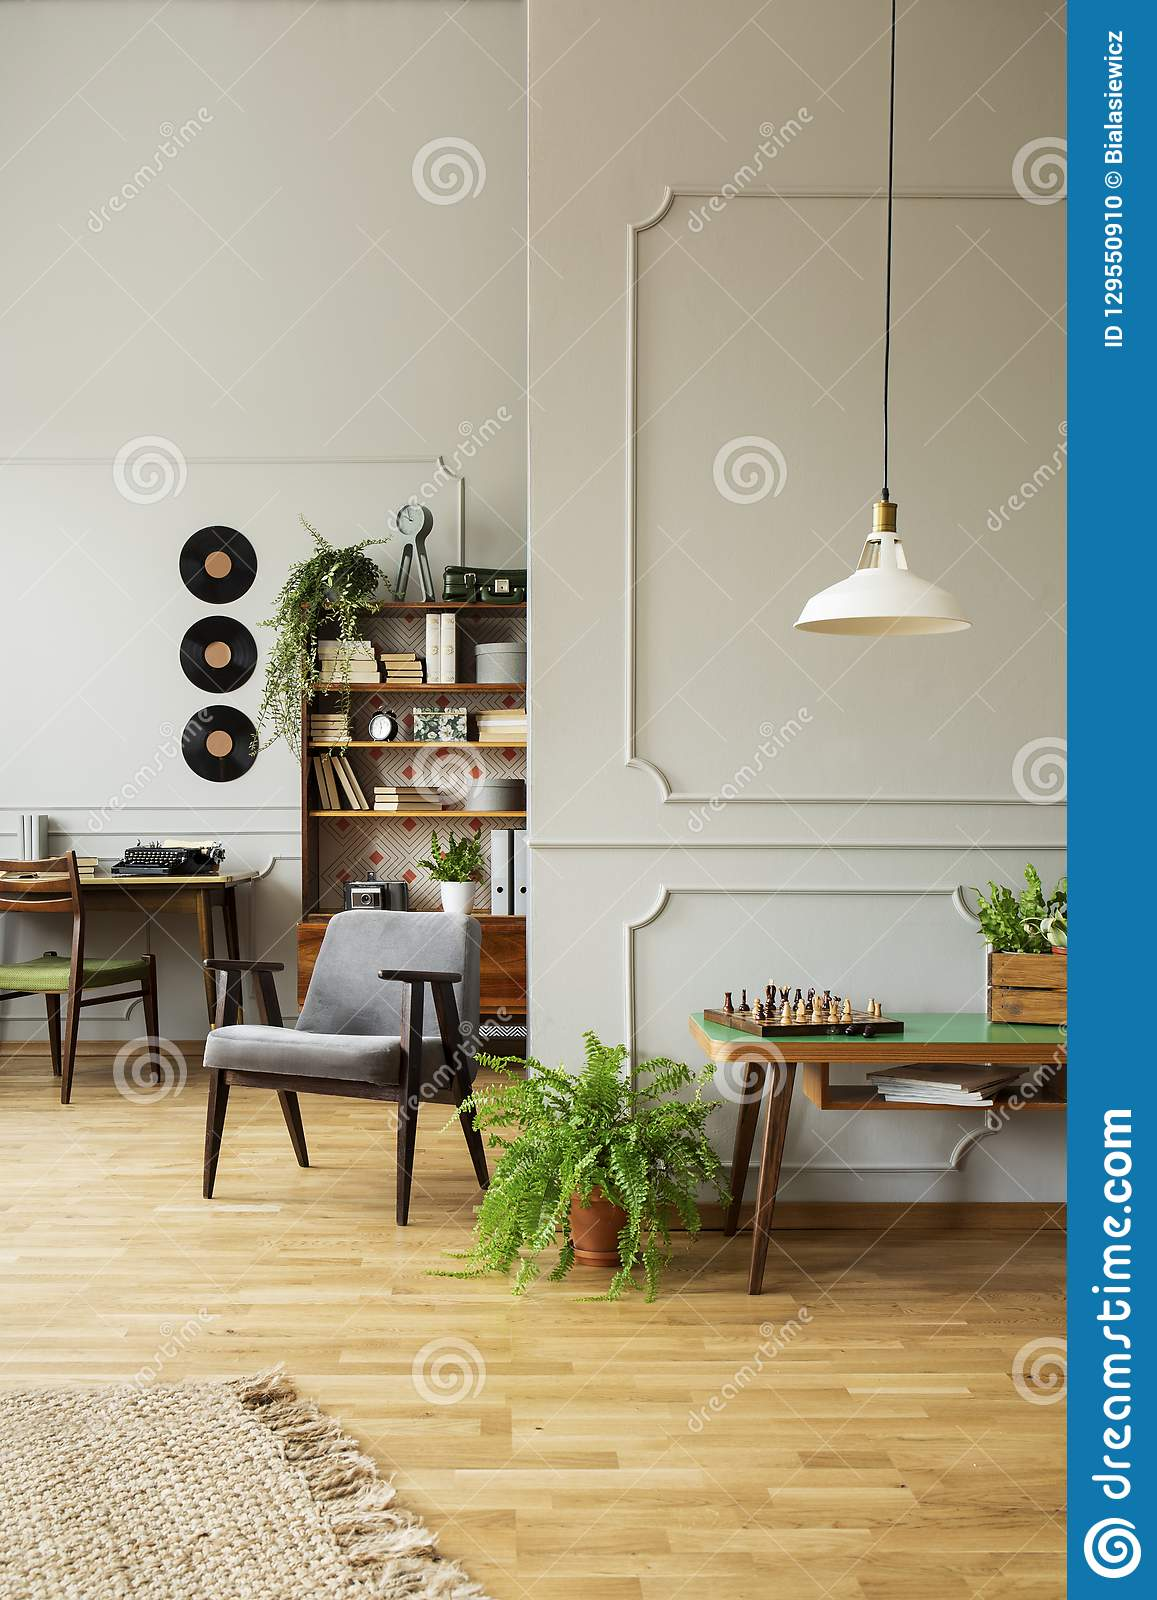 mid century modern living room armchair interior colors in a gray with wooden furniture workspace